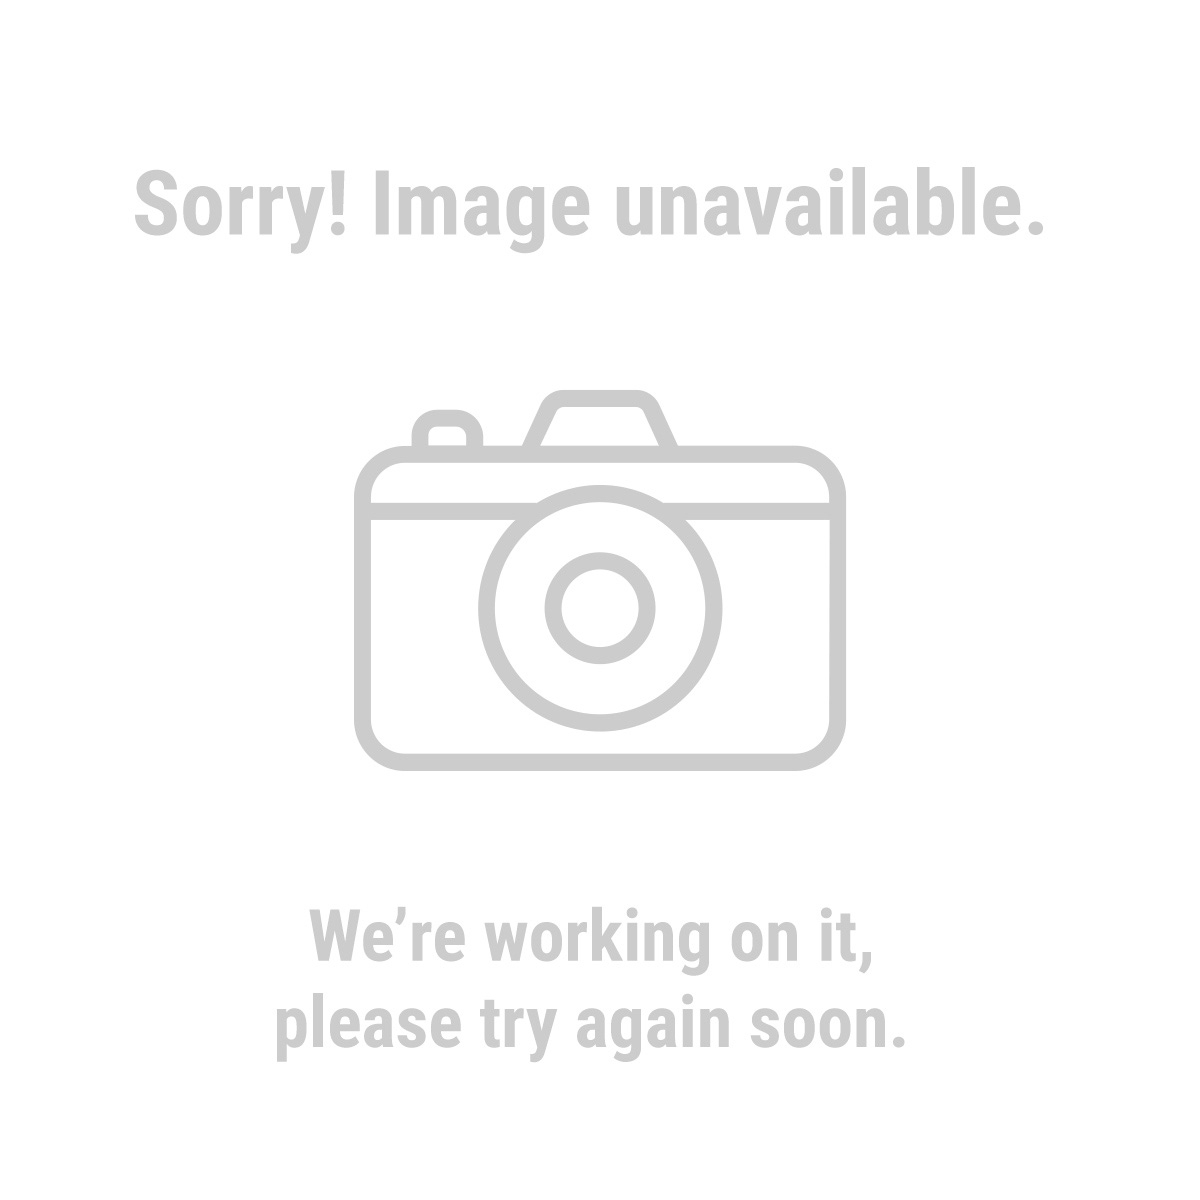 HFT® 69118 11 Ft. 4 In. X 11 Ft. 6 In. Blue All Purpose/Weather Resistant Tarp